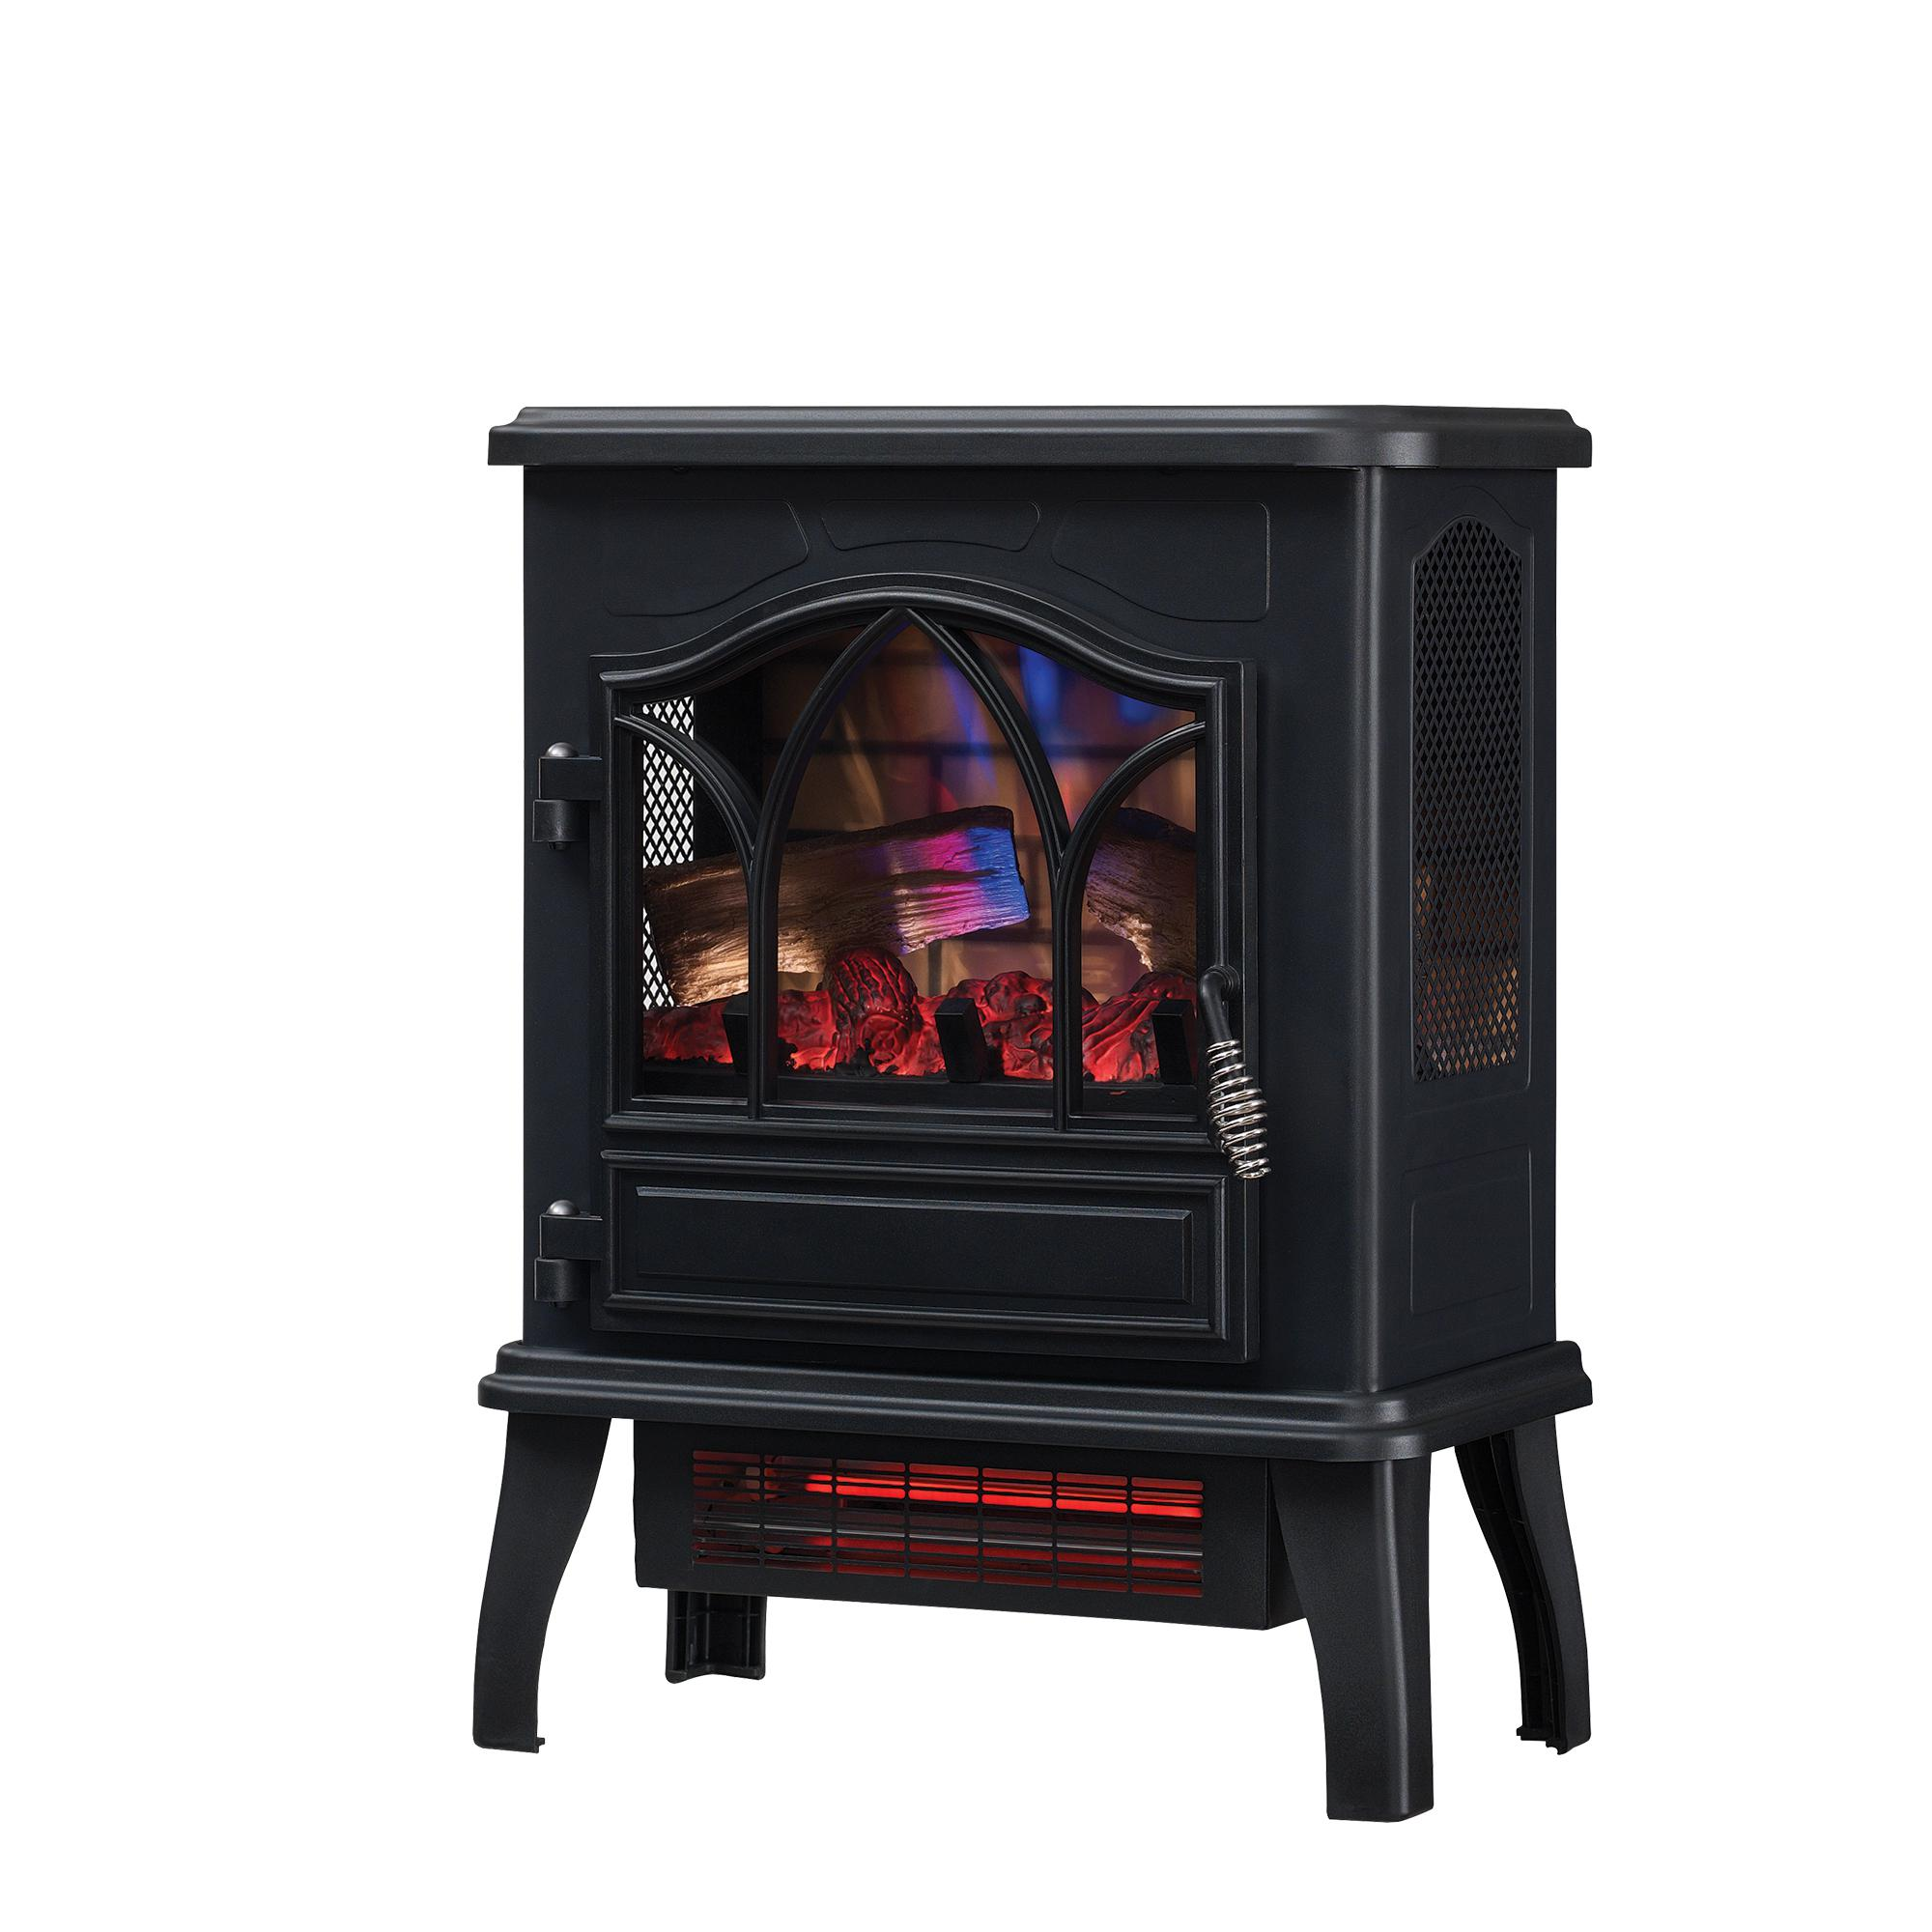 ChimneyFree Infrared Quartz Electric Space Heater, 5,200 BTU, Black Metal #CFI-470-02